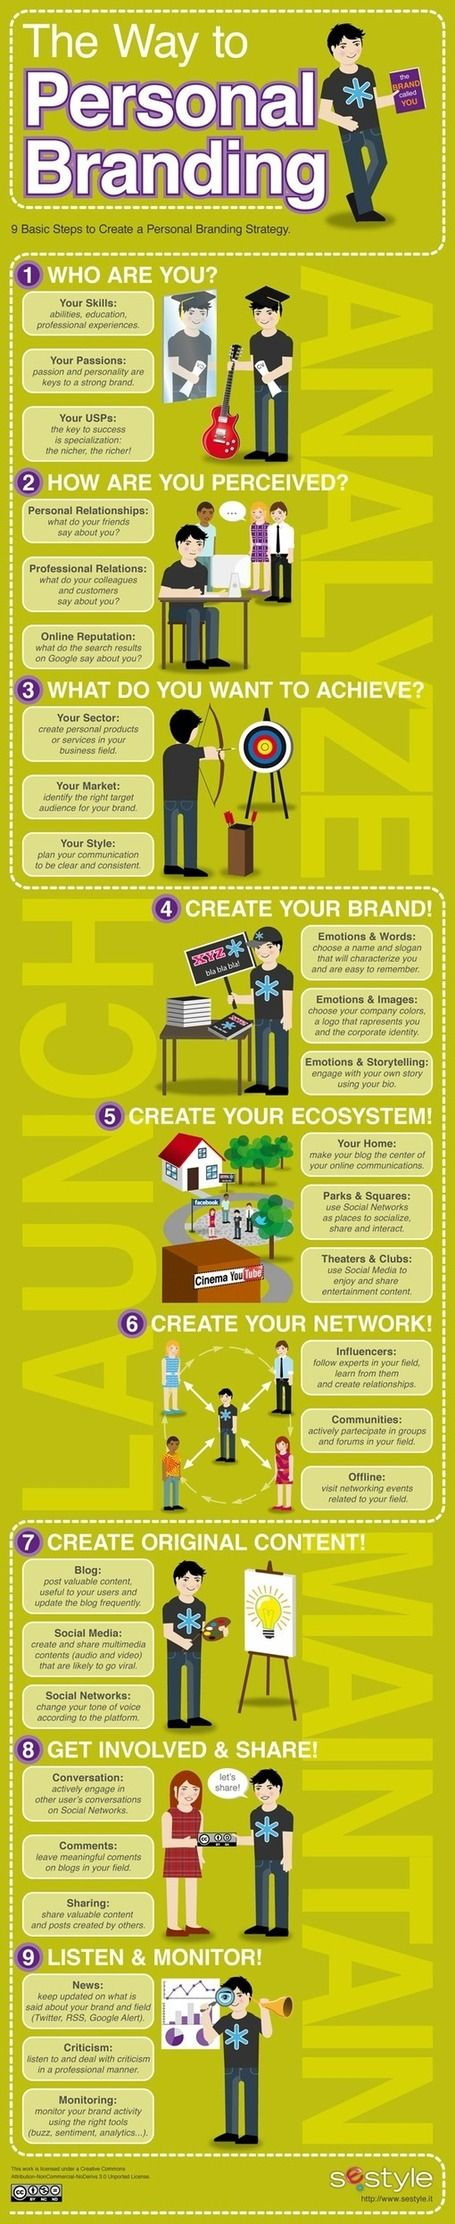 The Way to Personal Branding | MarketingHits | Scoop.it